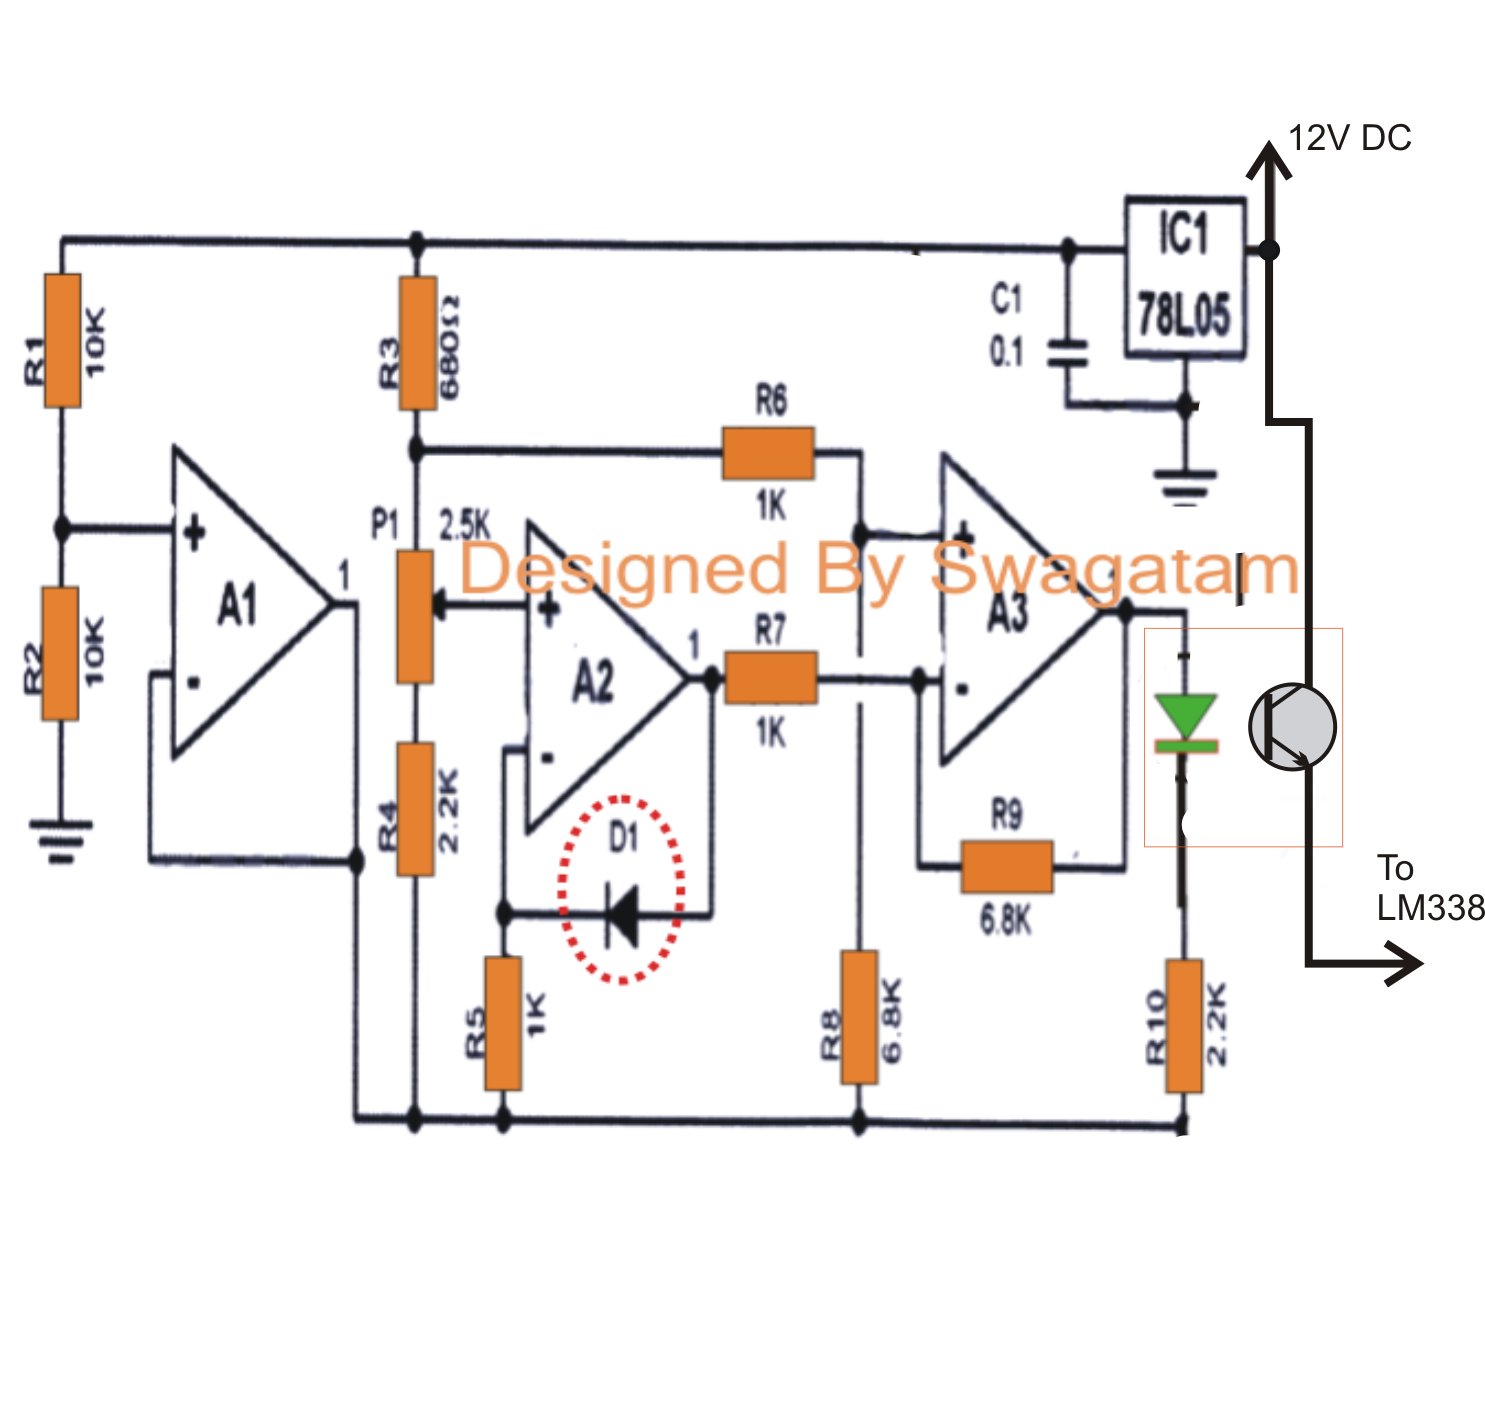 liion 37v charger diagram mx tl25 liion battery charger circuit electronic circuit projects